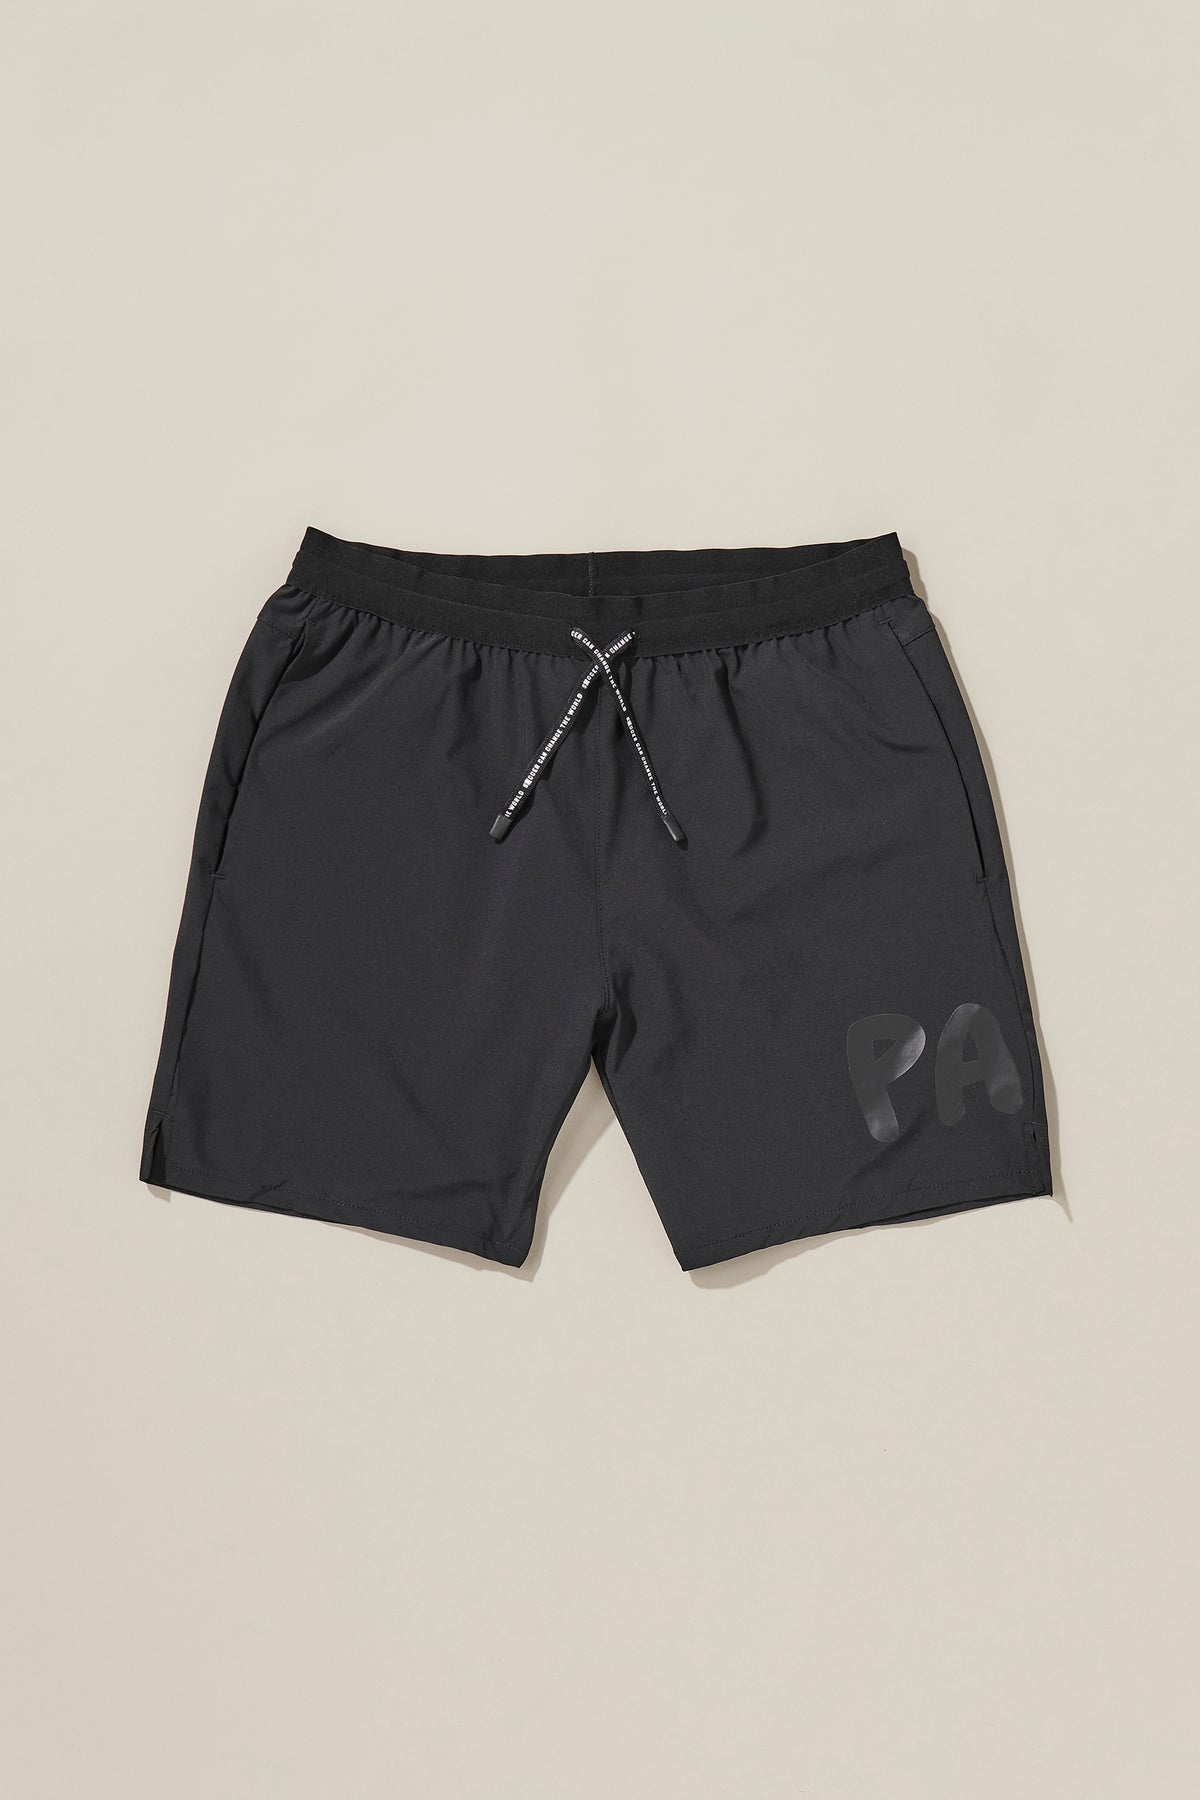 PARK Training Short